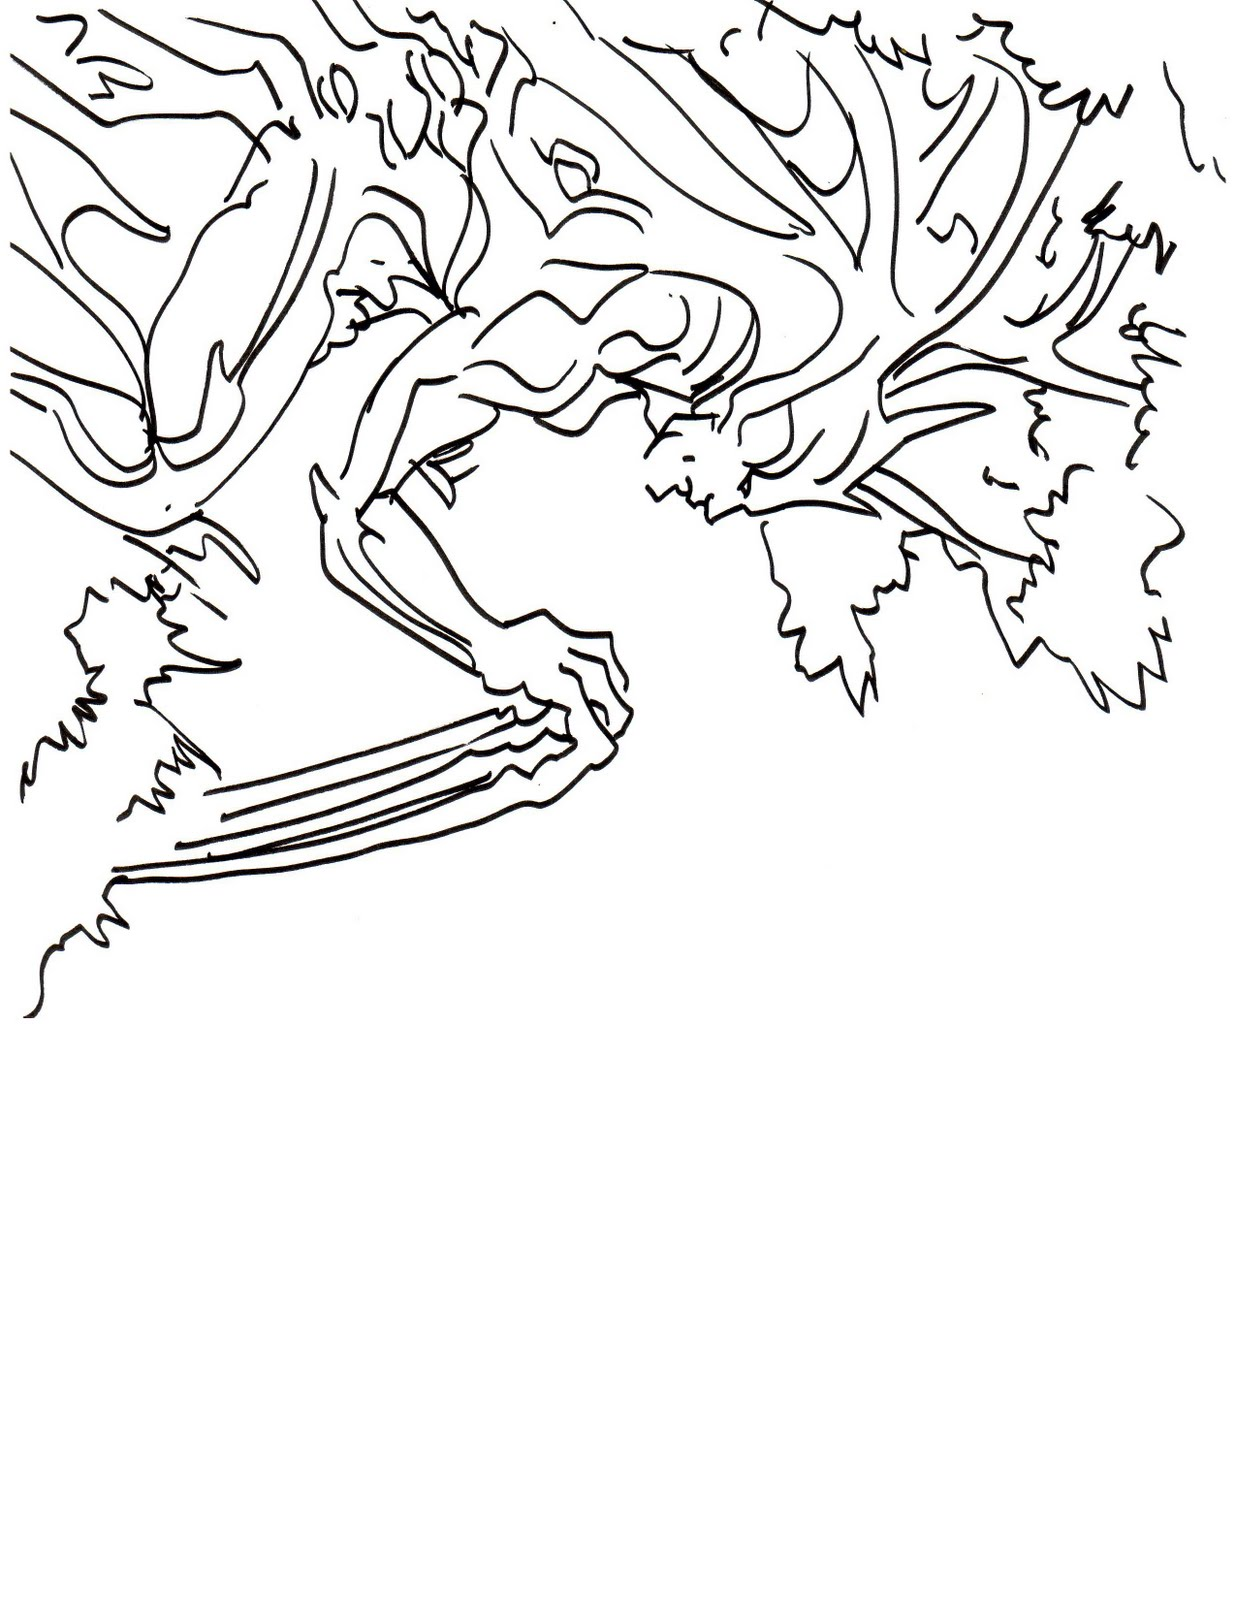 zookeeper coloring pages - photo#22